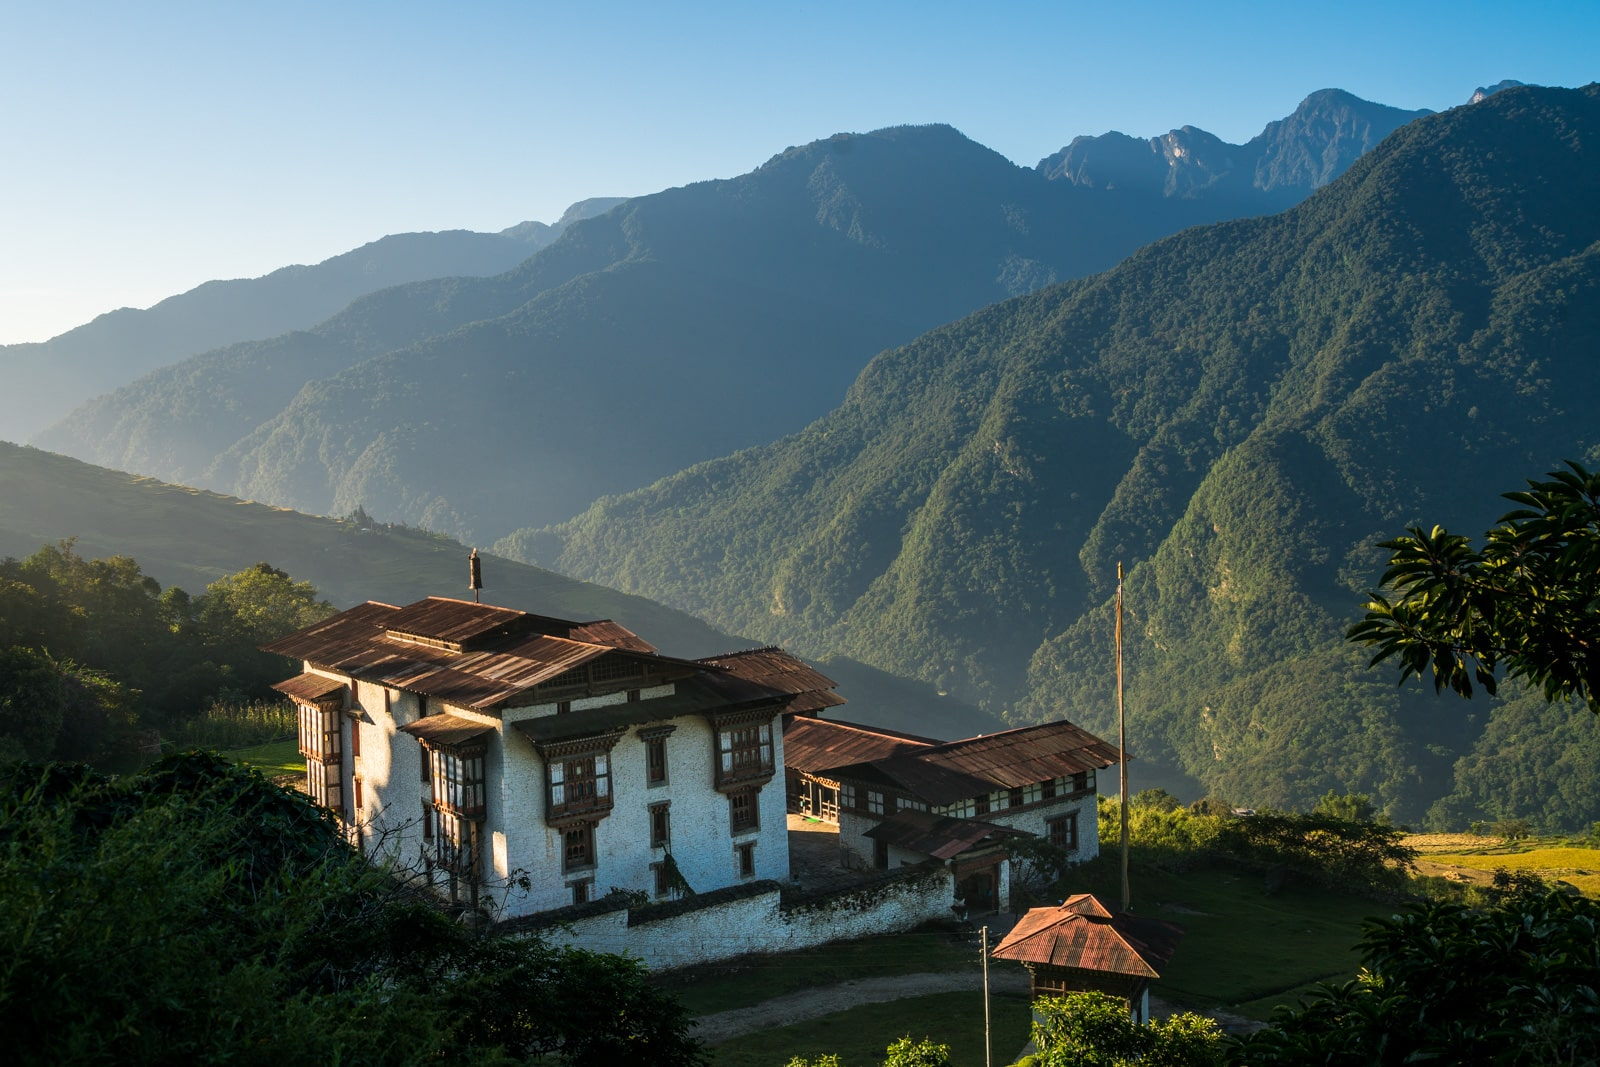 Stunning photos of Bhutan - Kuengarabten dzong at sunrise - Lost With Purpose travel blog